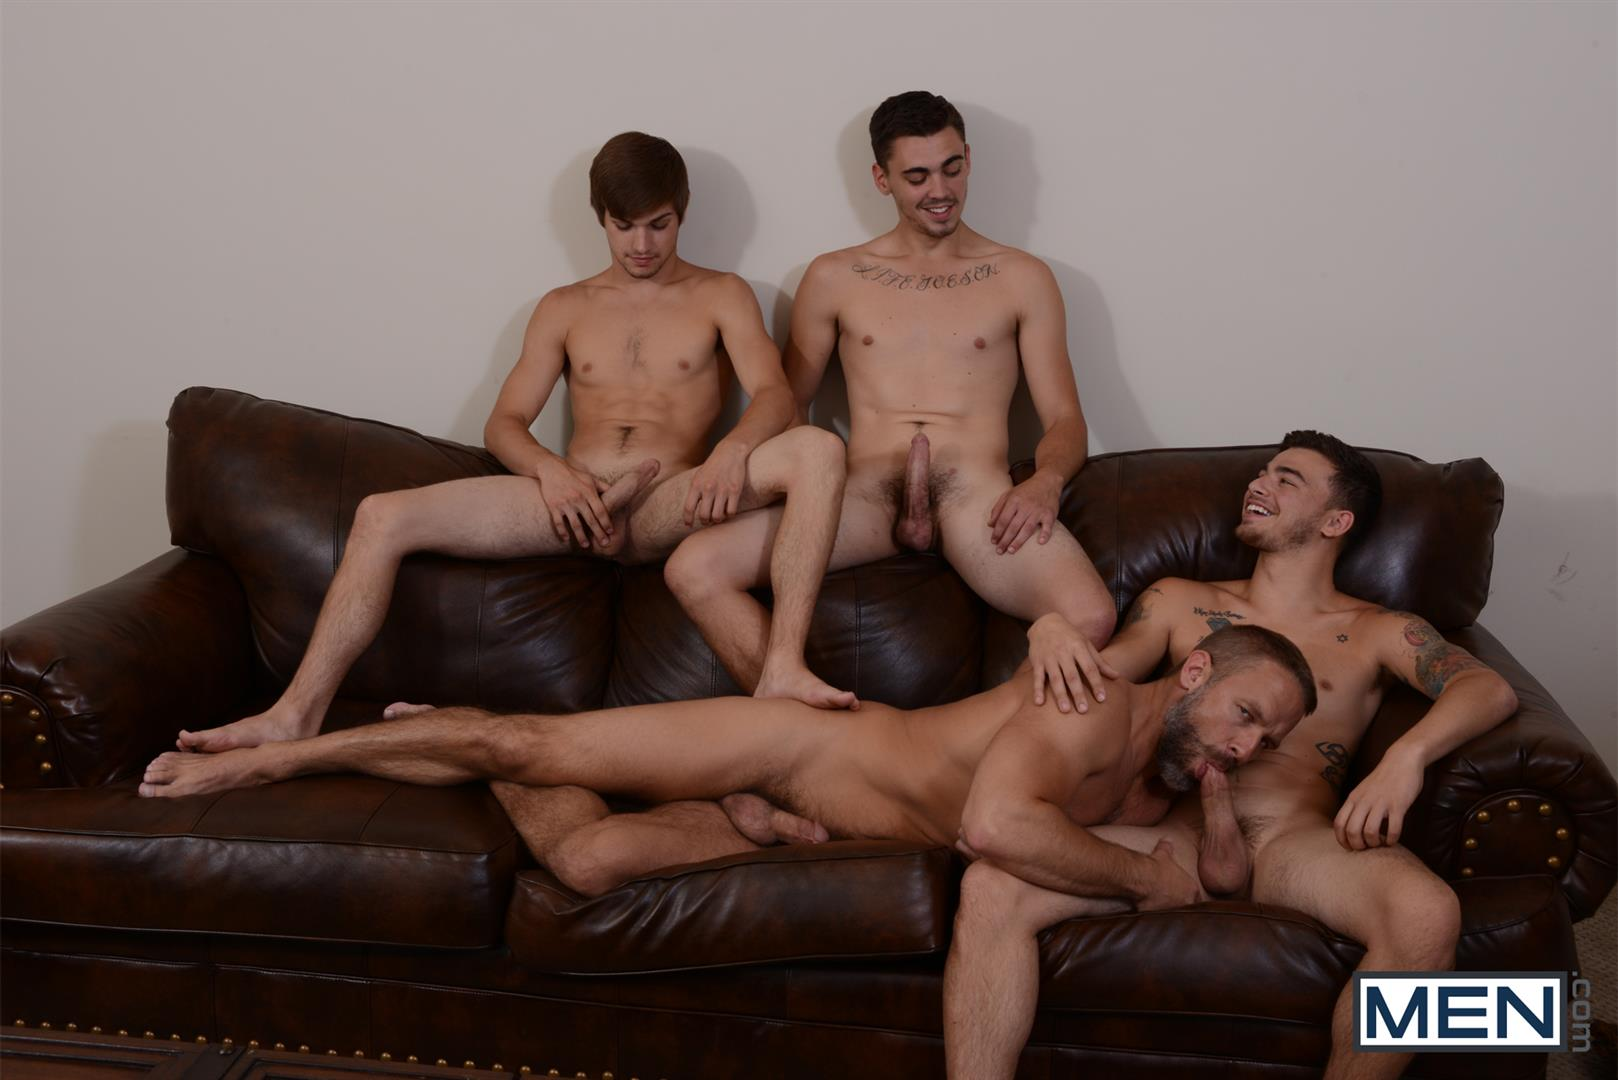 Men-Jizz-Orgy-Asher-Hawk-and-Dirk-Caber-and-Johnny-Rapid-and-Trevor-Spade-Triple-Penetrated-In-the-Ass-Amateur-Gay-Porn-09 Stepfather Dirk Caber Gets TRIPLE Penetrated By His Stepsons